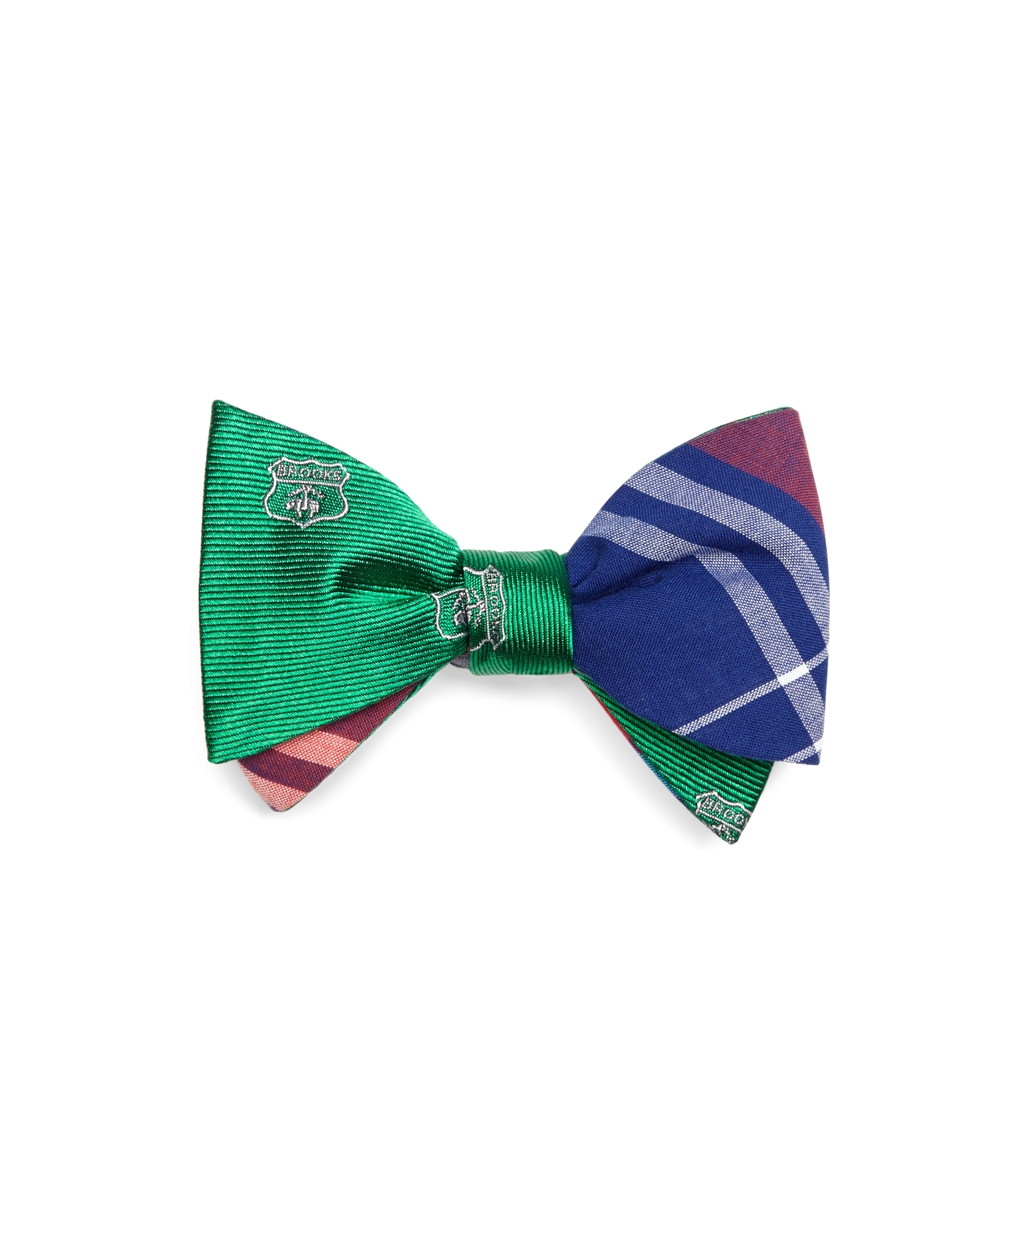 Lyst - Brooks Brothers Crest And Madras Reversible Bow Tie ...